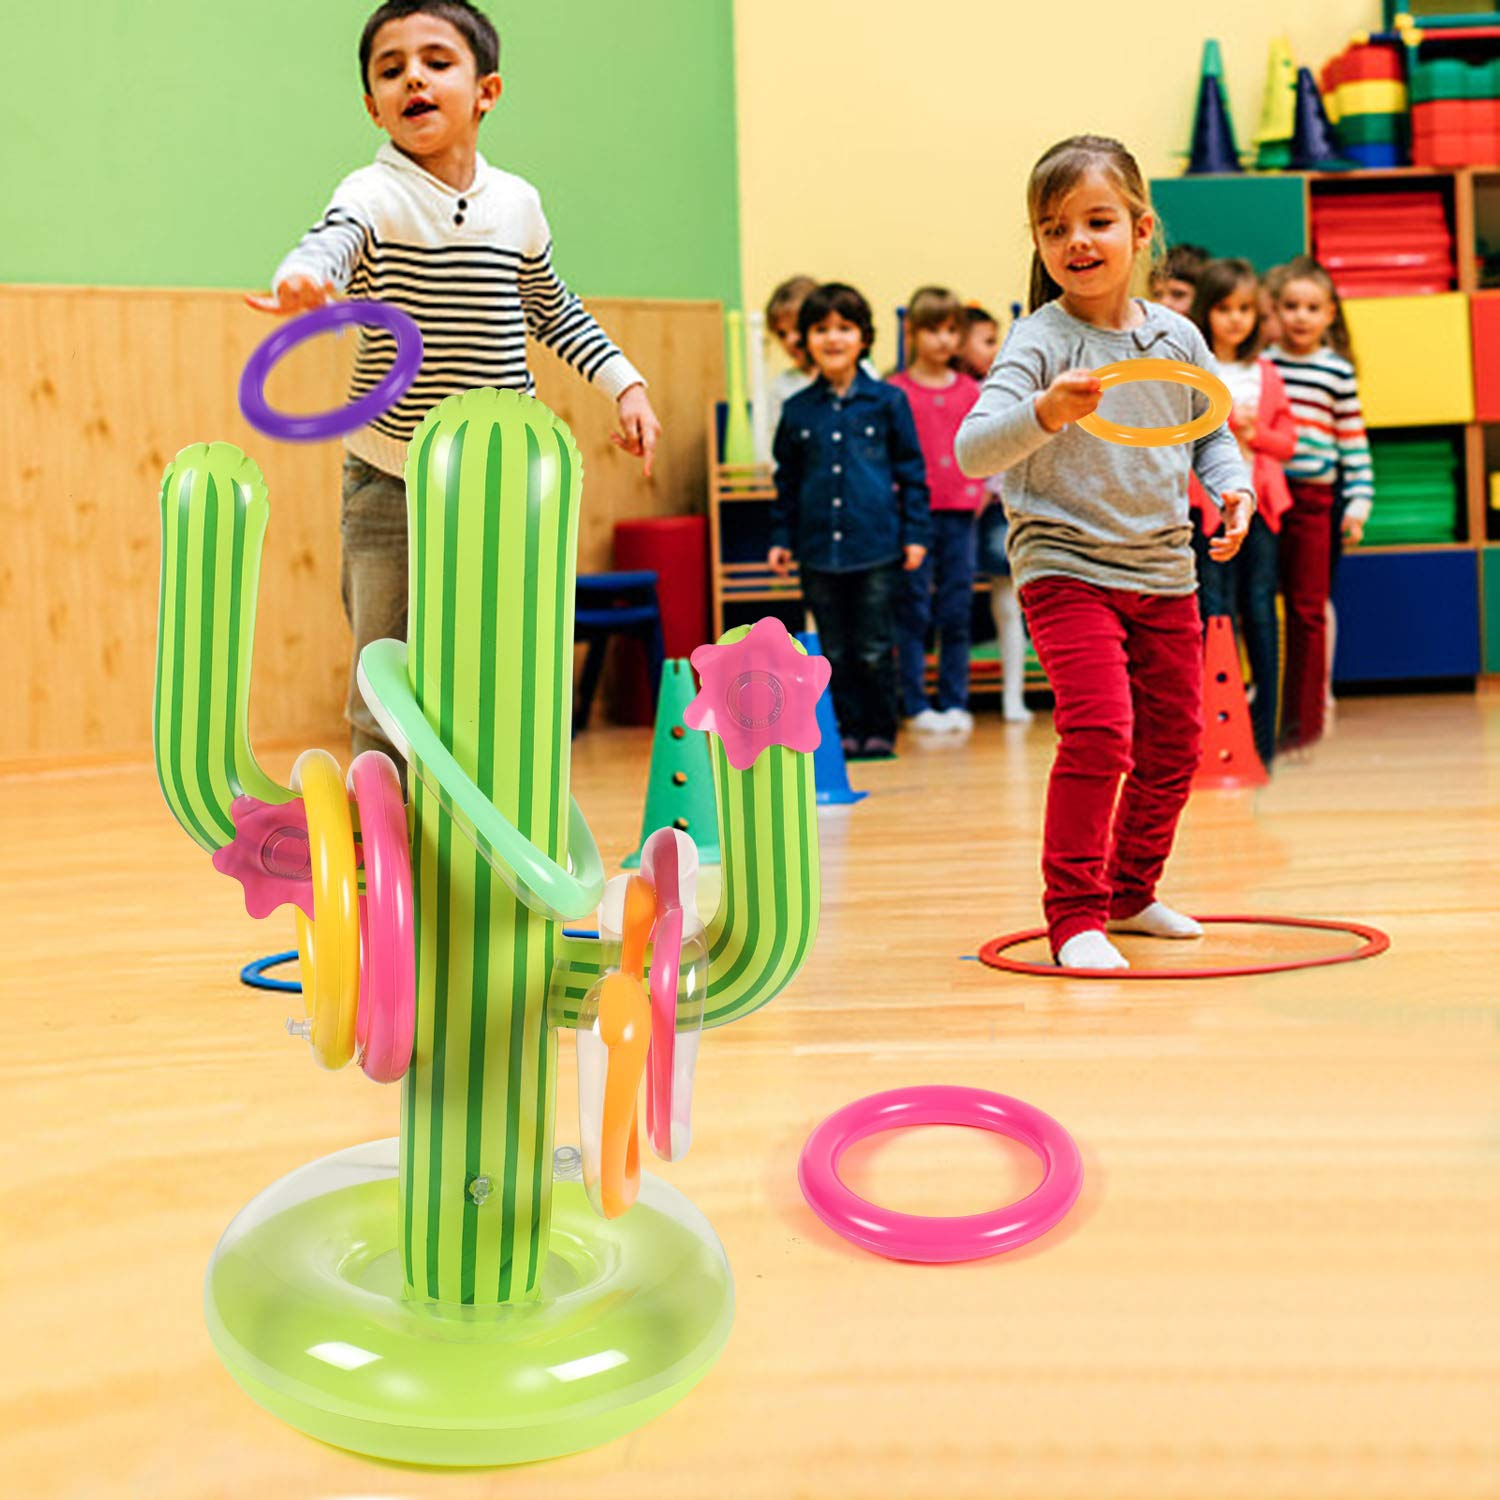 Bascolor 17Pcs Inflatable Ring Toss Game Set 1pcs Inflatable Cactus 6pcs Inflatable Toss Rings 9pcs Number Stickers 1pcs Flamingo Gift Box for Kids Adults Mexican Fiesta Pool Party Games Supplies